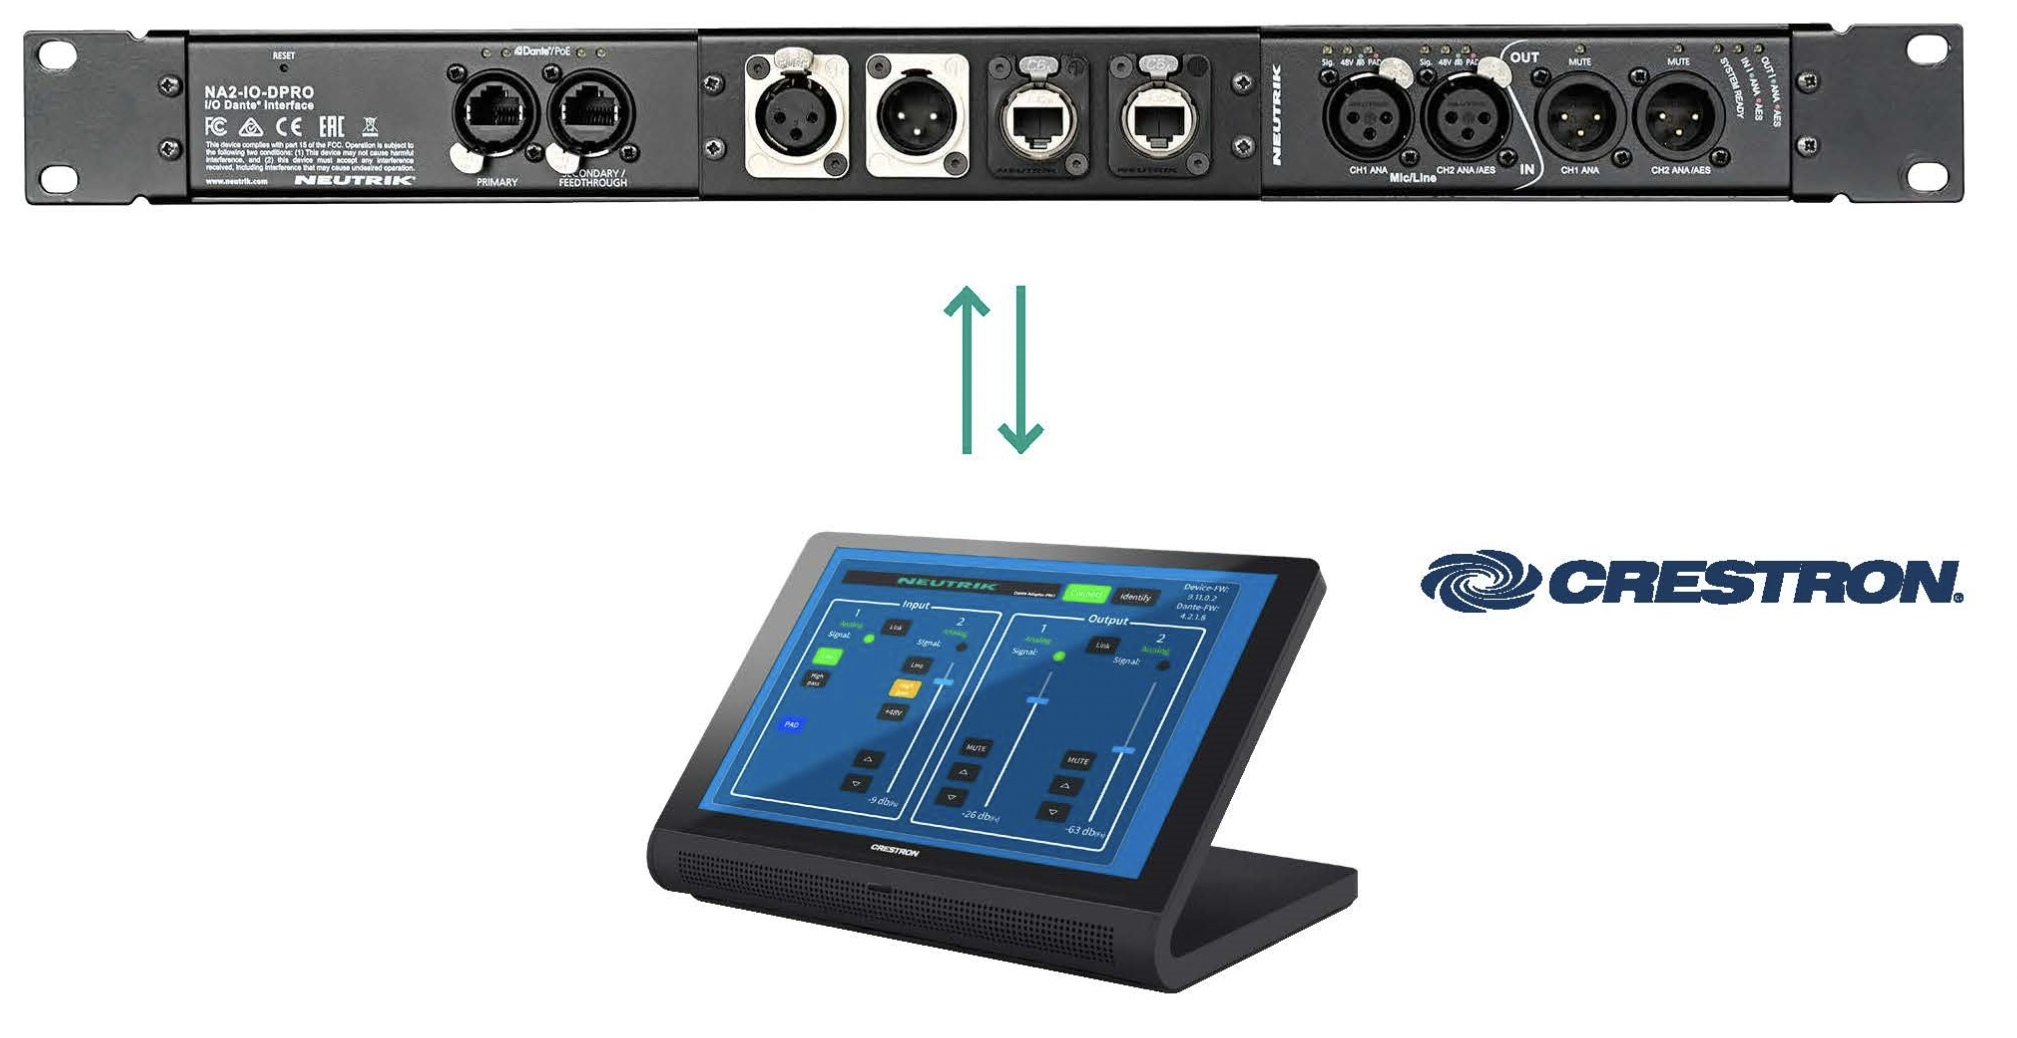 Neutrik now features full integration with Crestron control products to remote control the NA2-IO-DPRO